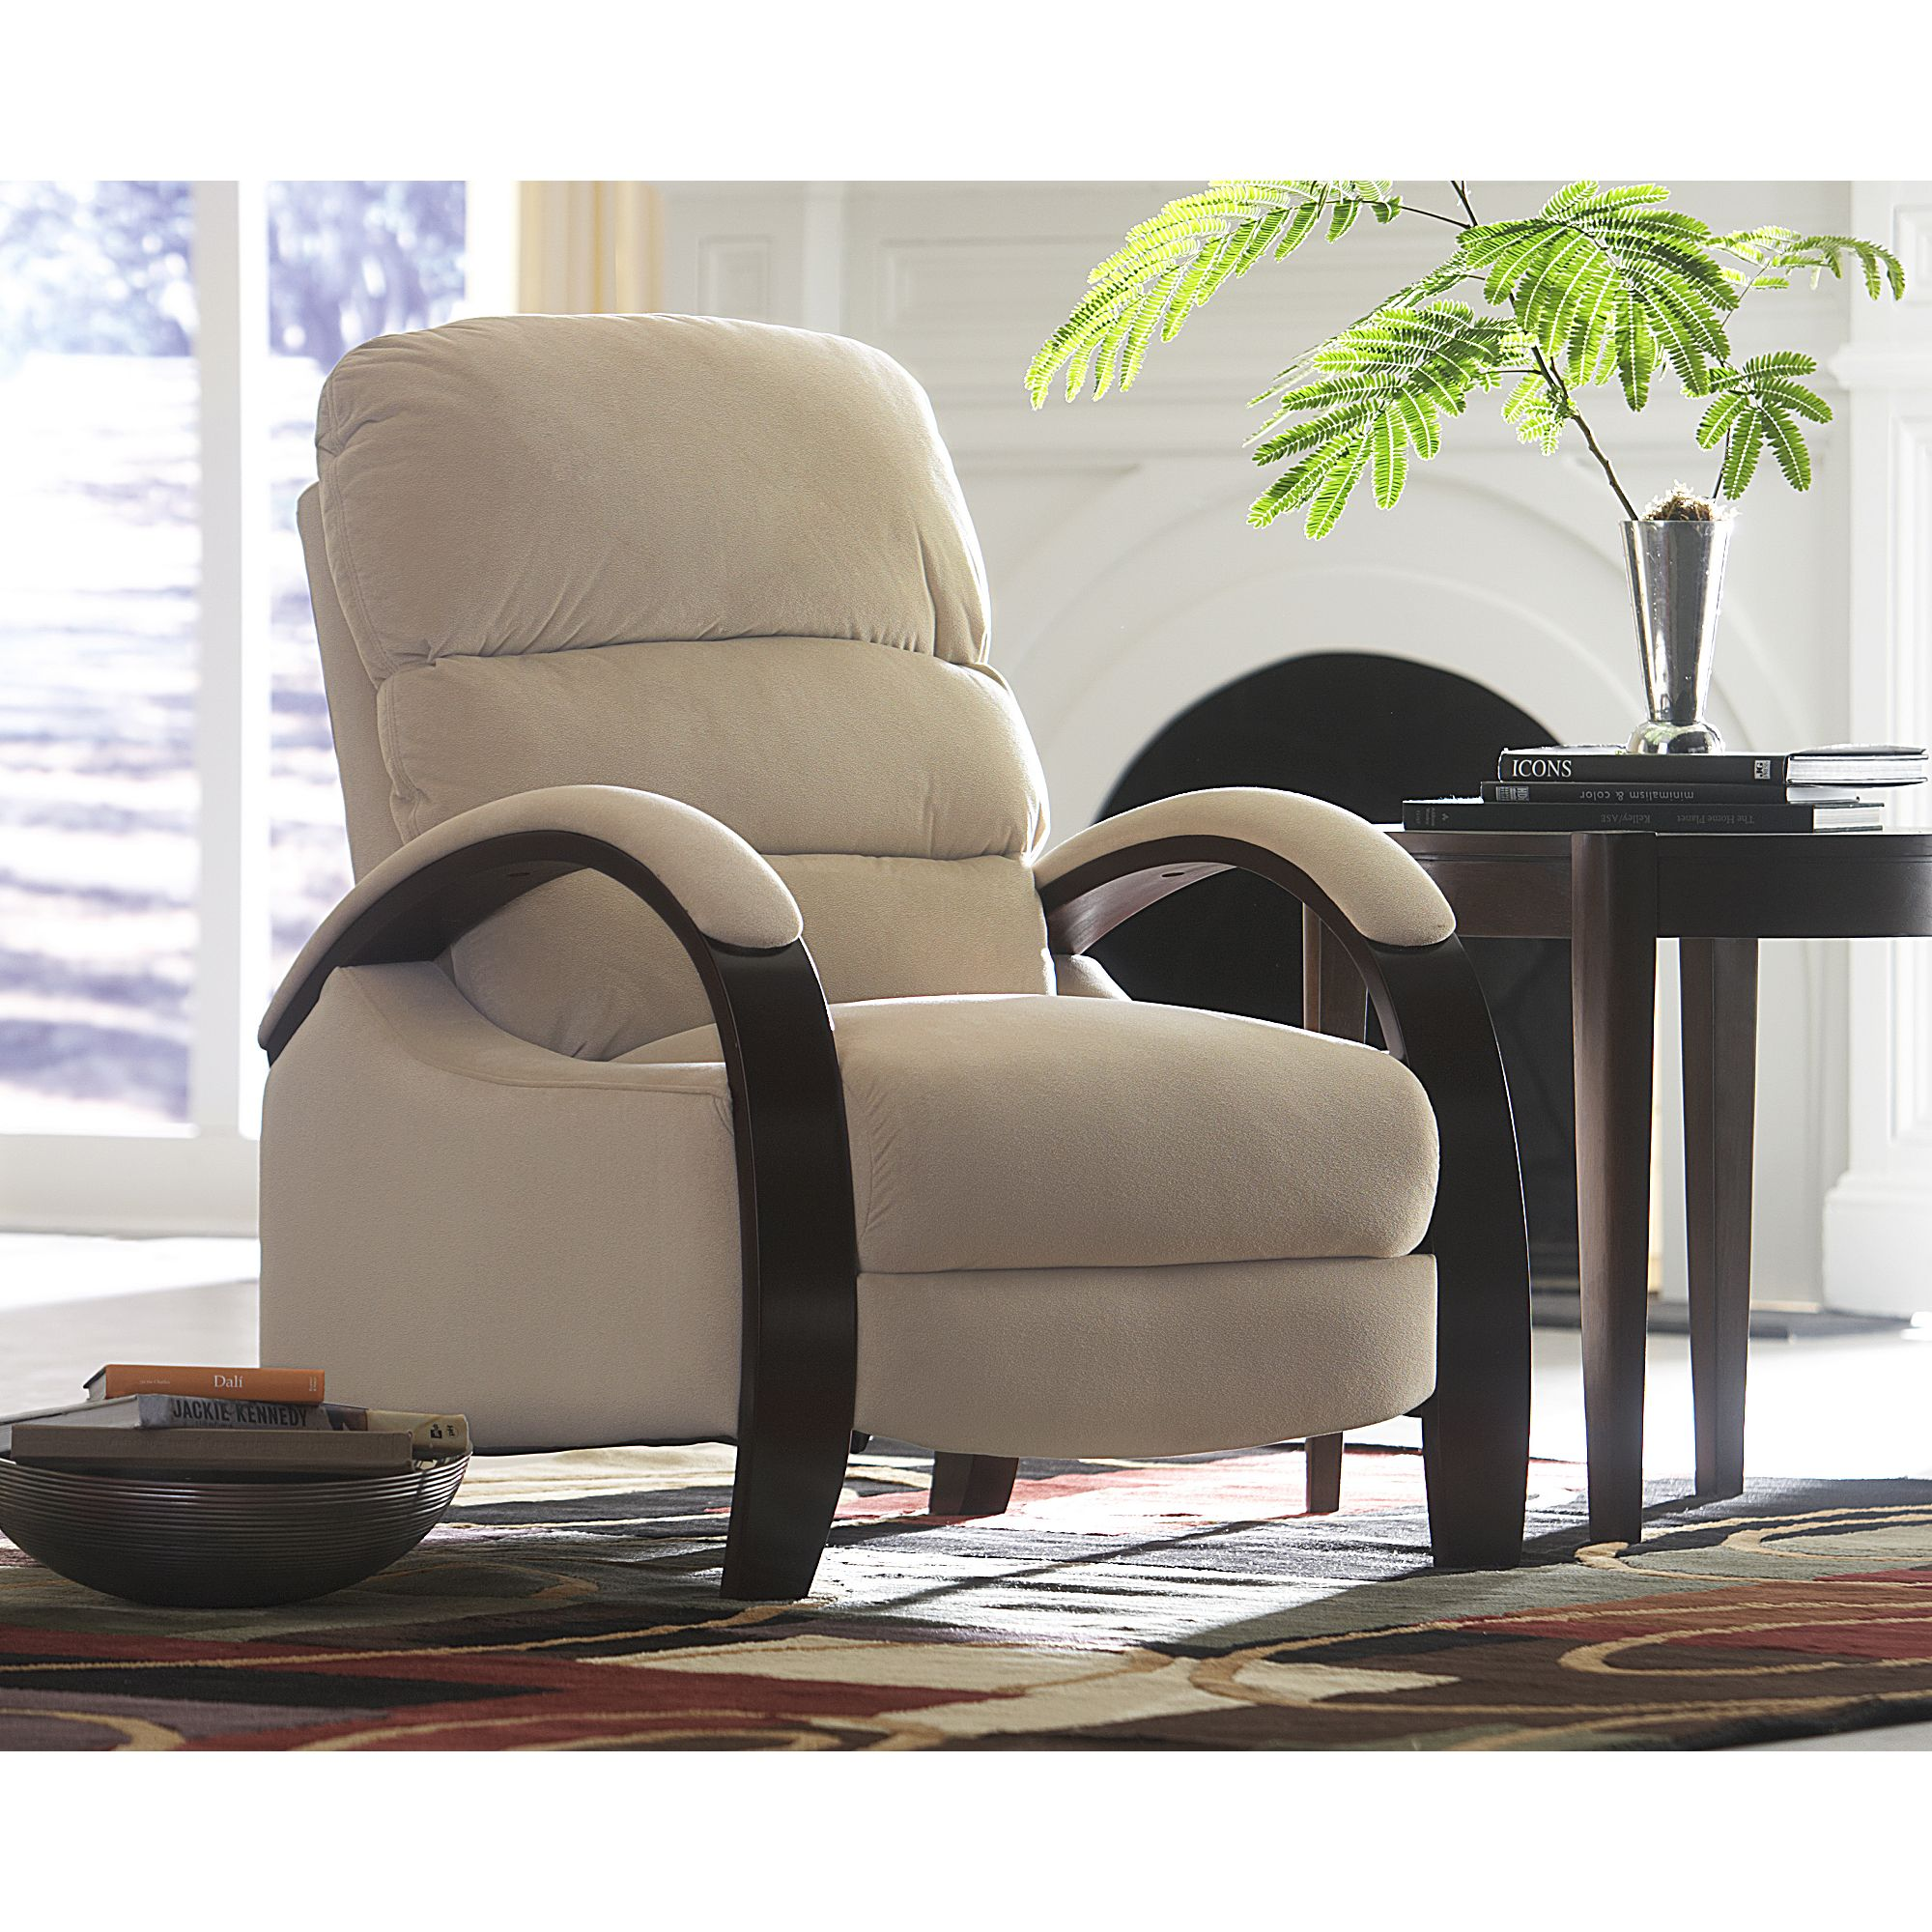 Havertys Greenville Sc | Havertys | Havertys Furniture Quality